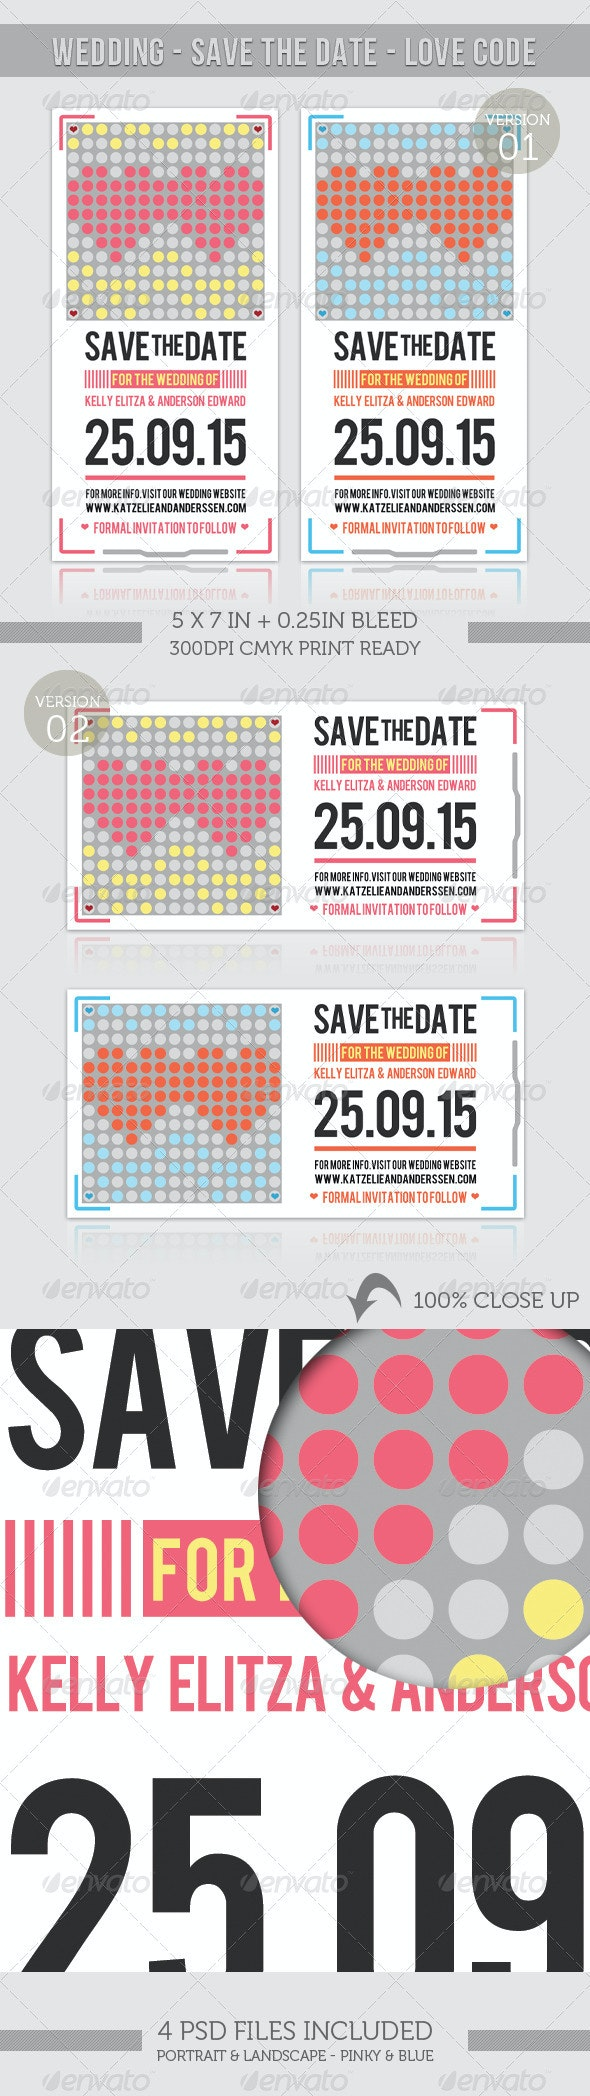 Wedding - Save The Date - Love Code - Weddings Cards & Invites